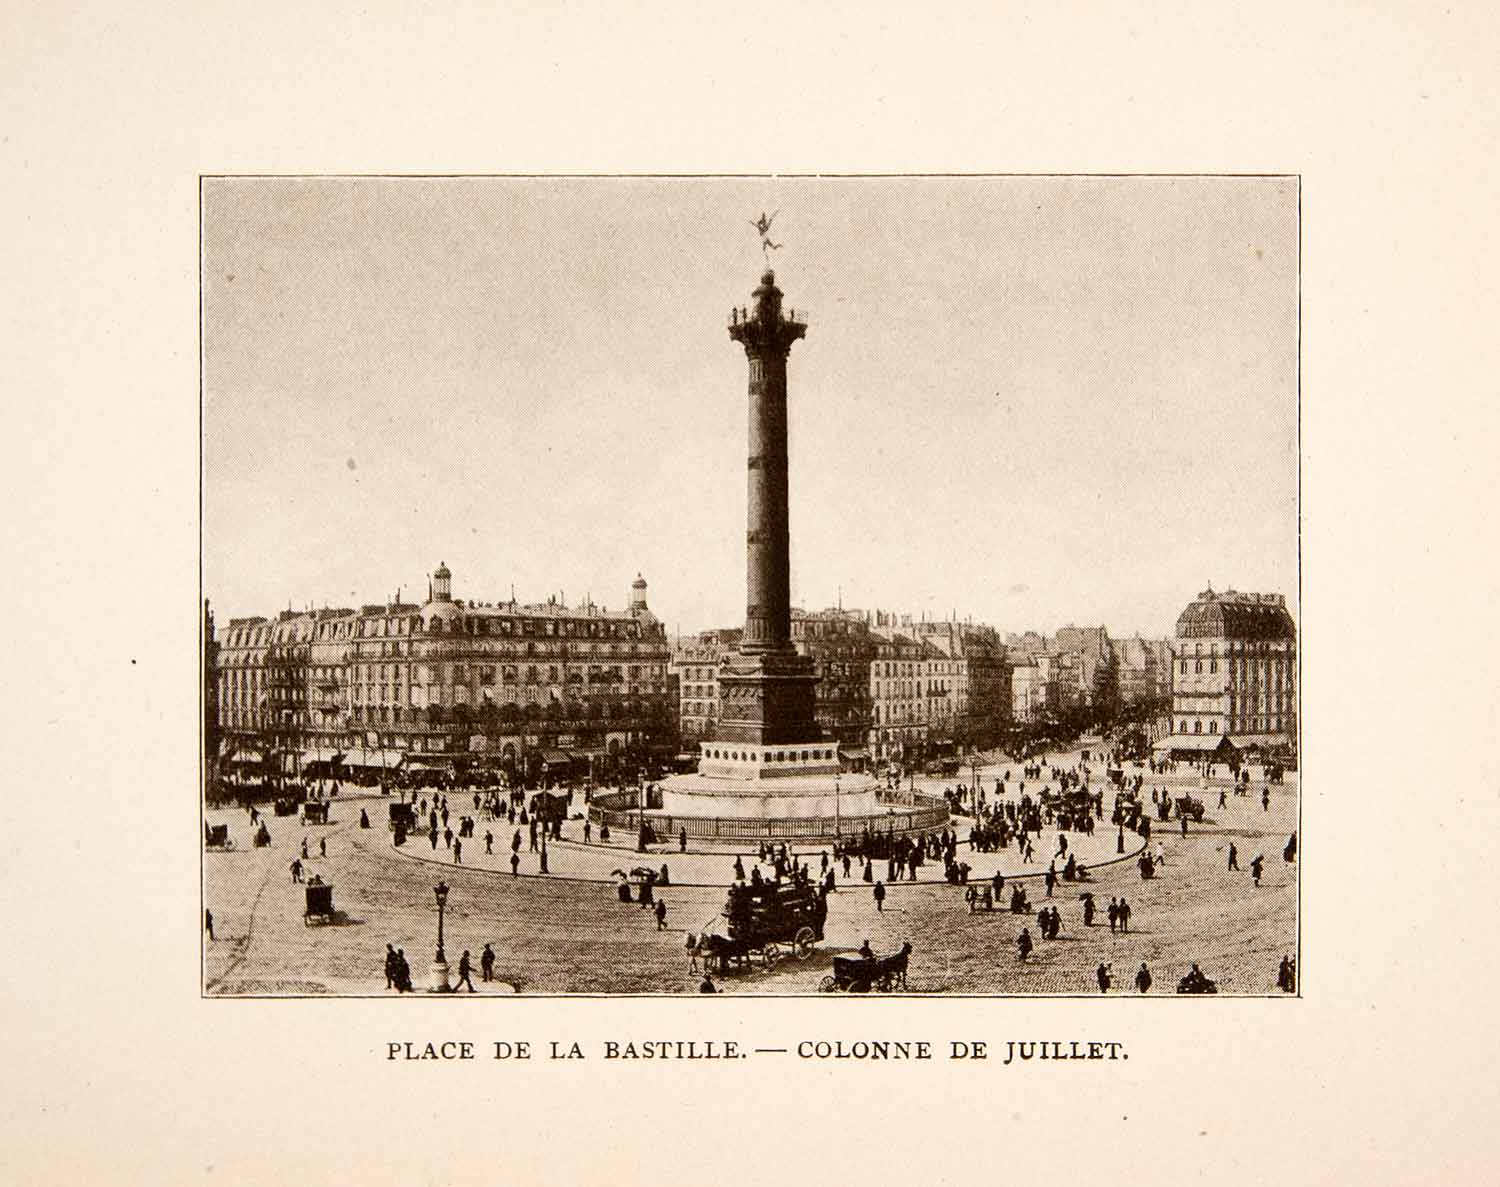 1907 Print Colonne Juillet July Column Place Bastille Paris France XGXA5